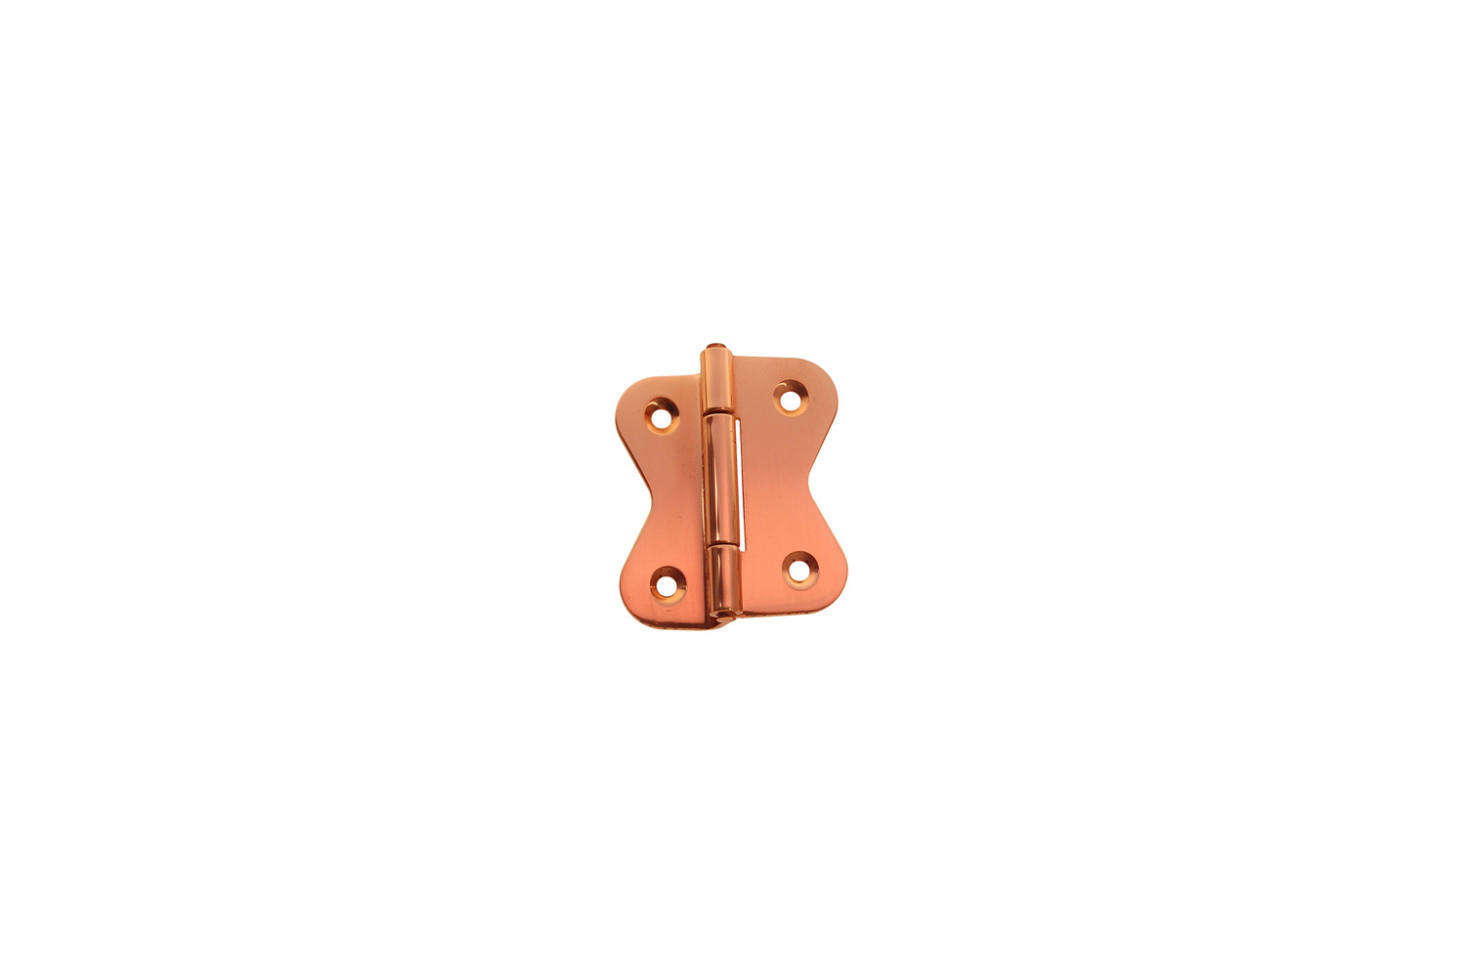 For similar polished copper kitchen cabinet hinges, consider the Hoosier Offset Cabinet Hinge in polished copper for $6. each at Historic House Parts.